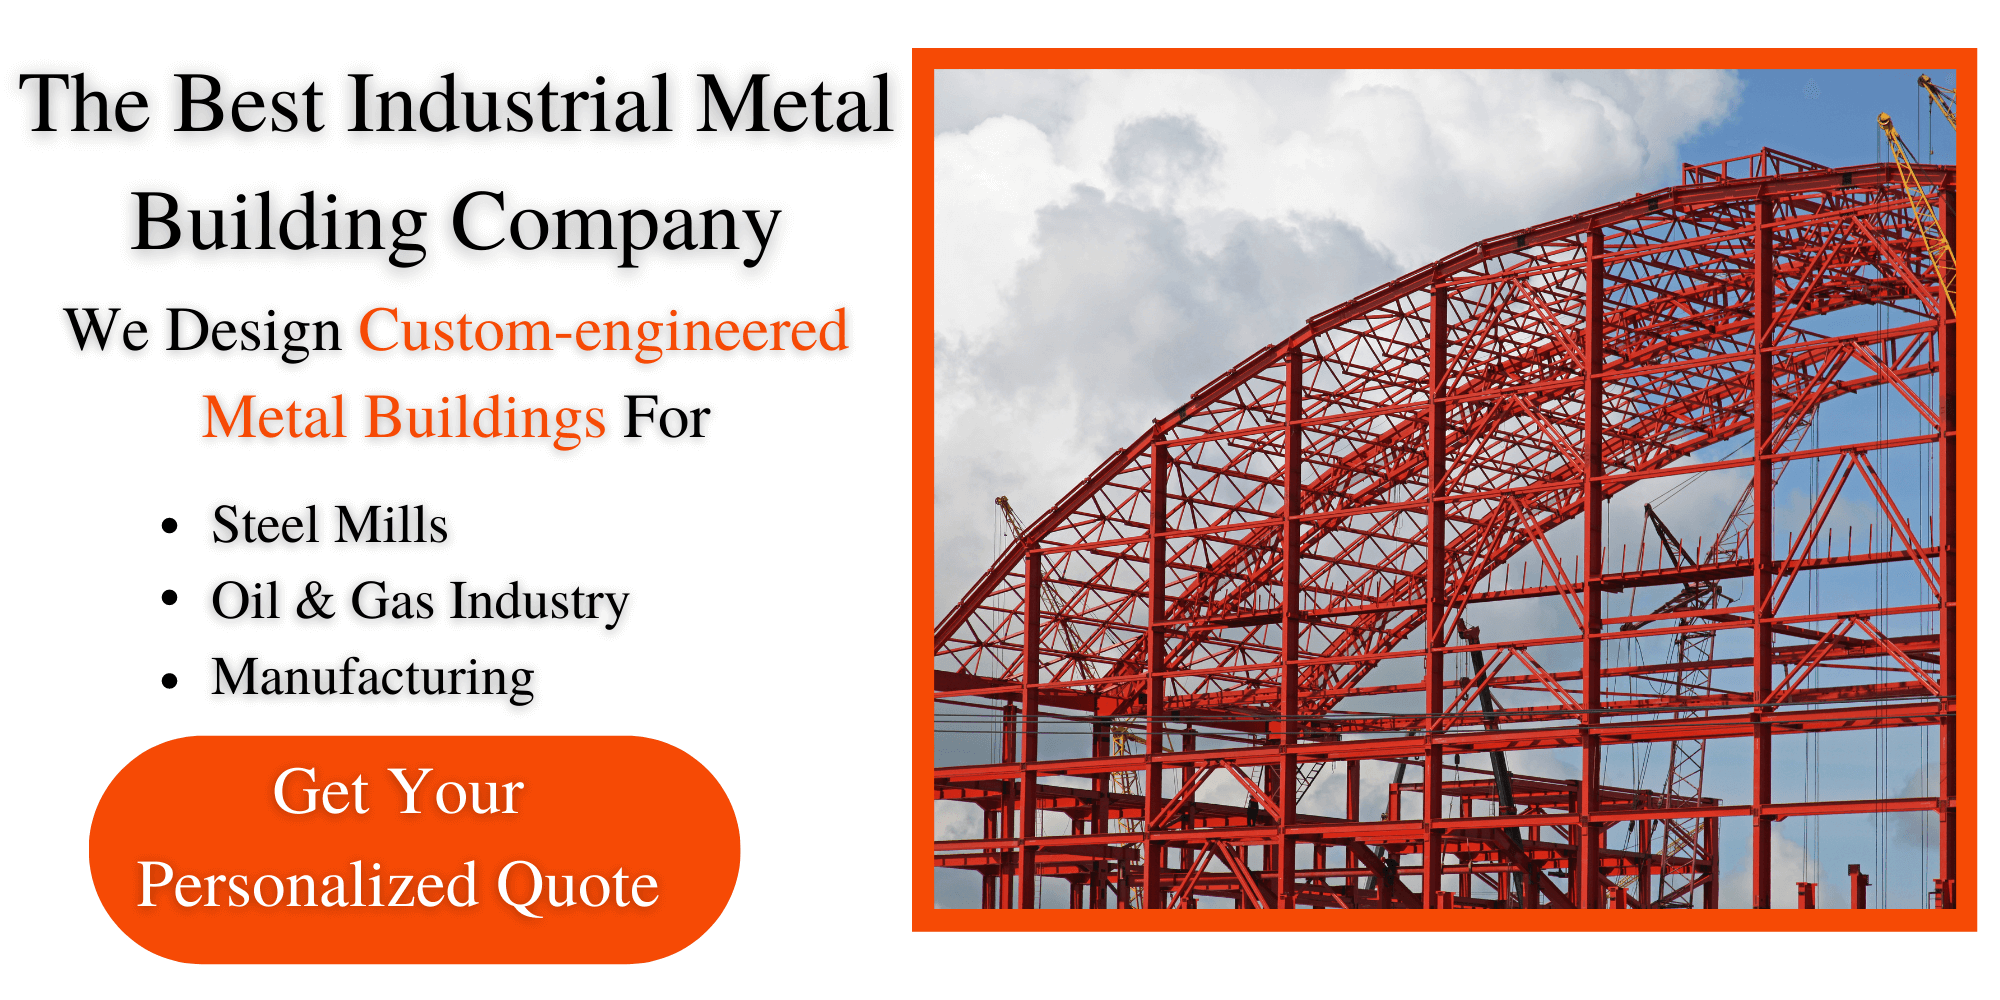 our-steel-erectors-can-help-with-your-metal-building-project